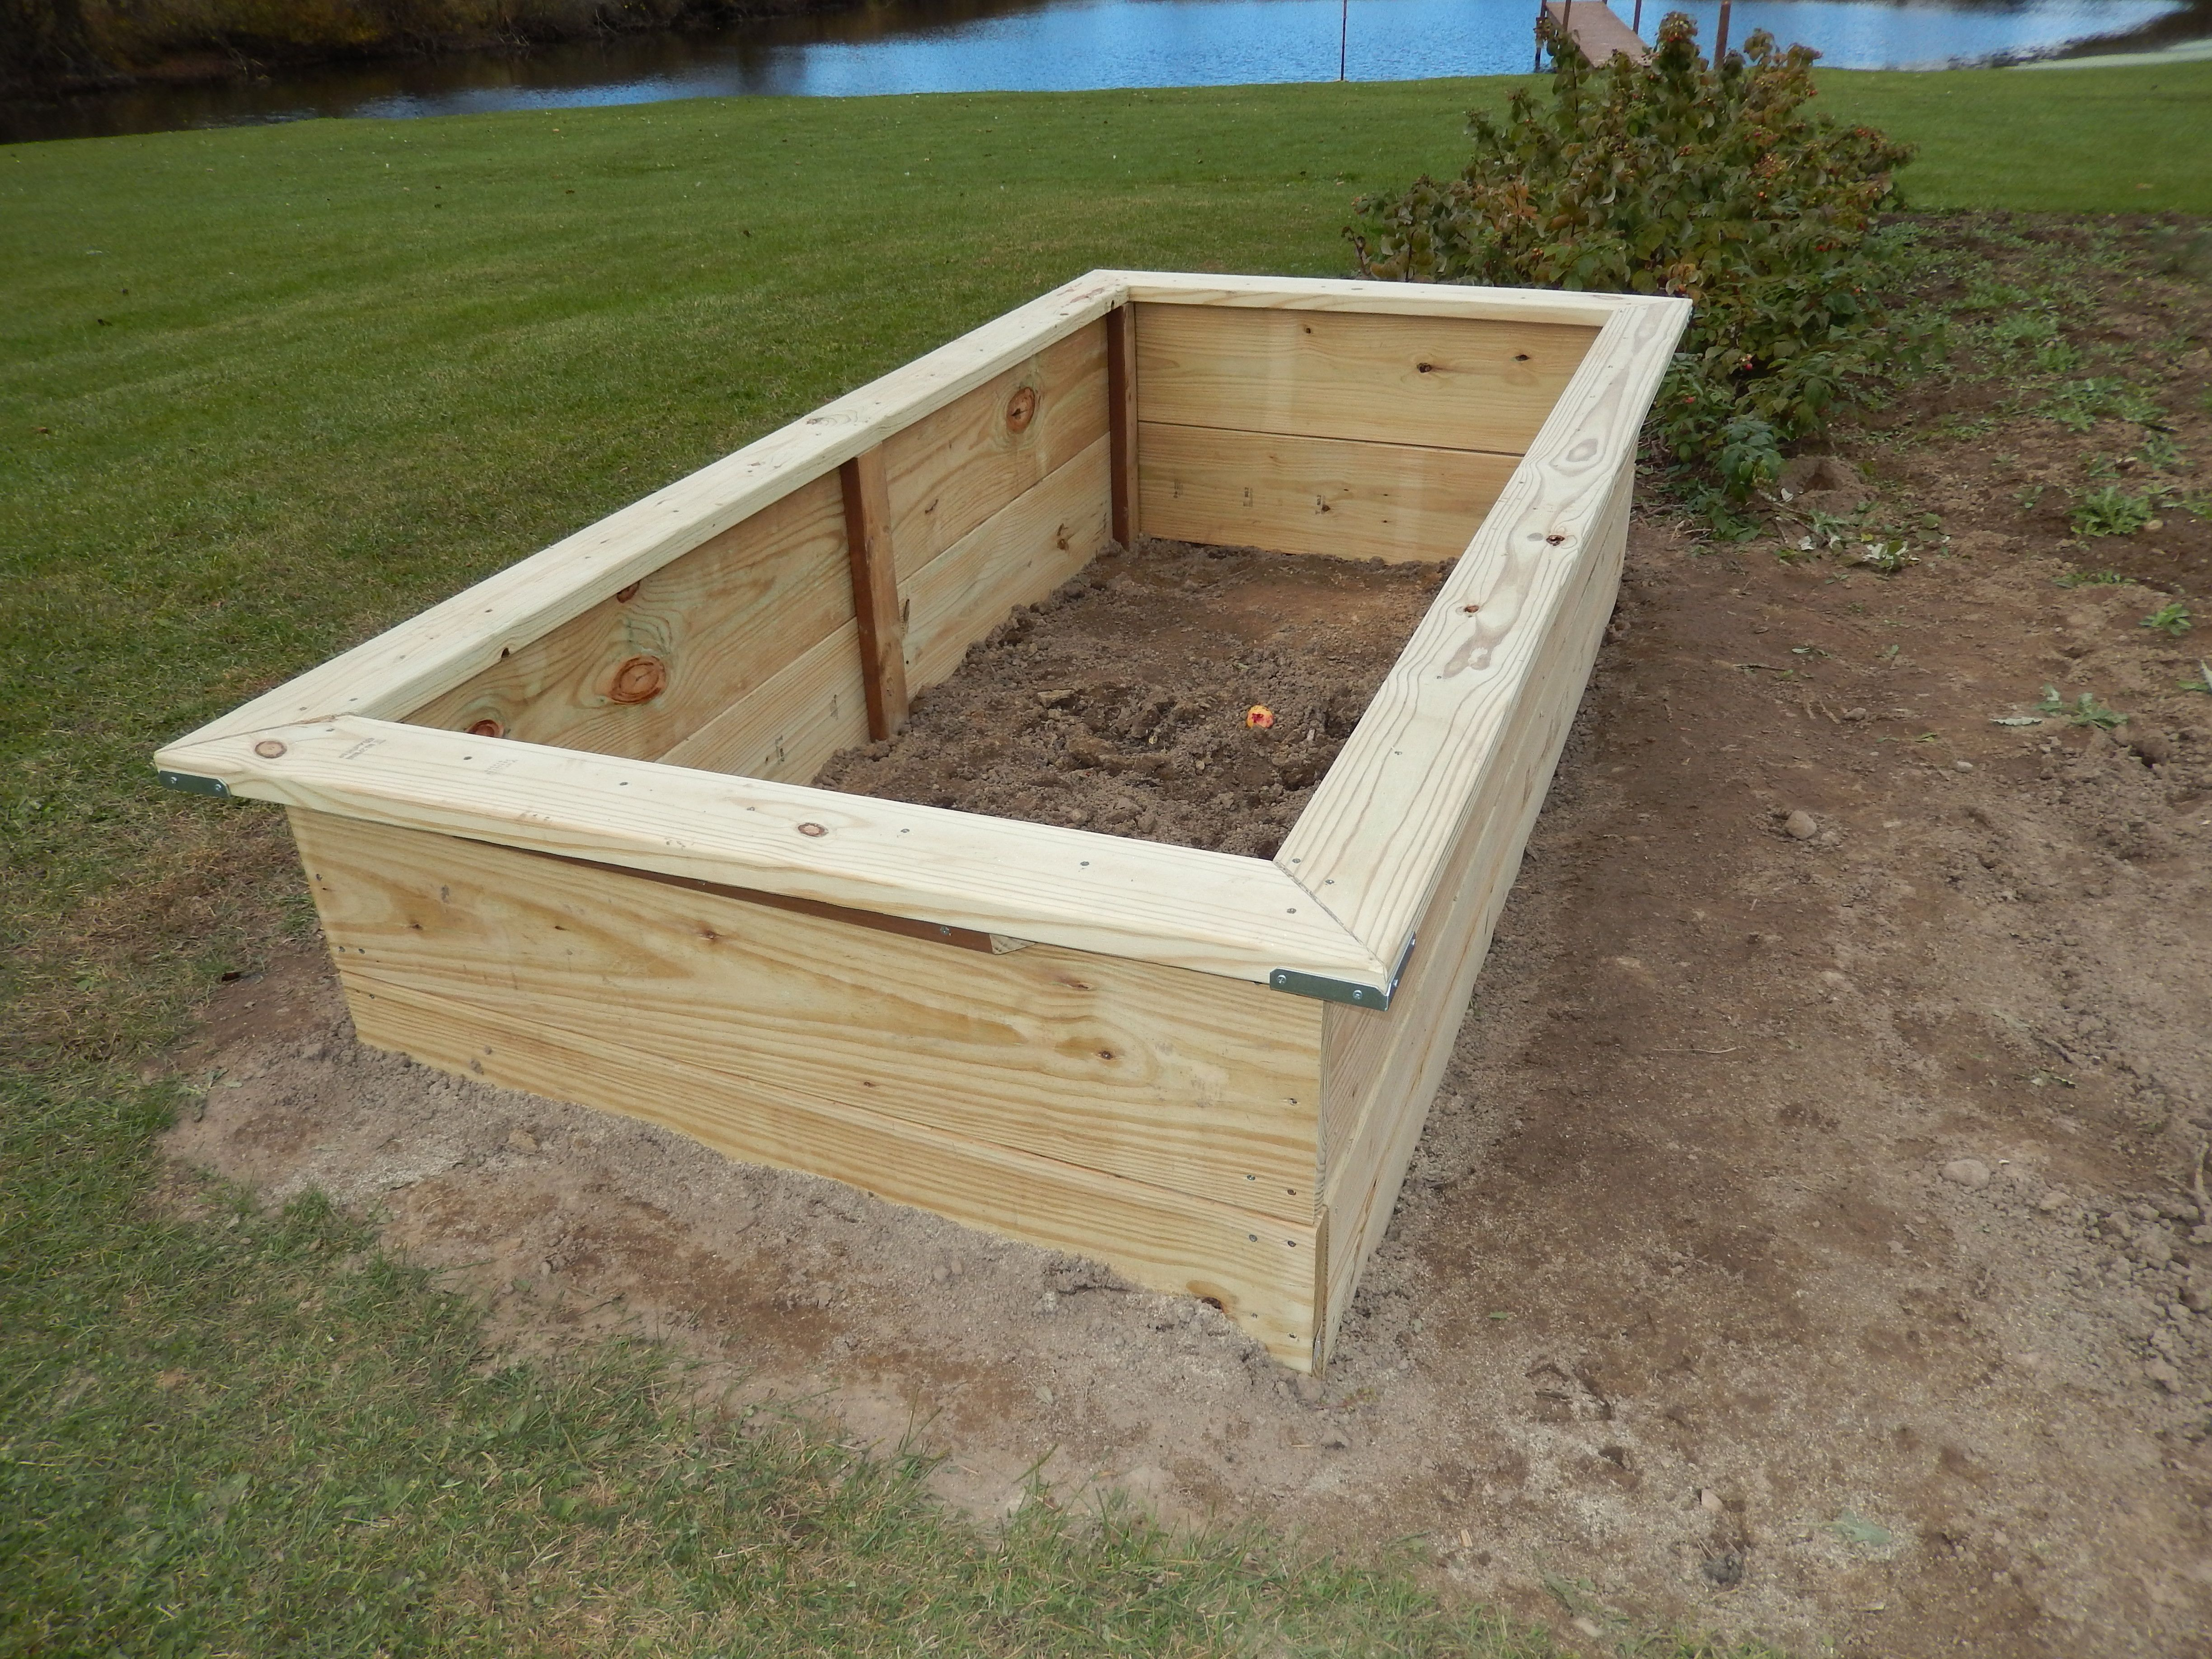 Raised Bed Construction Made With 2 X 12 4 8 Treated Lumber Beginning Of My Hugelkulture Method